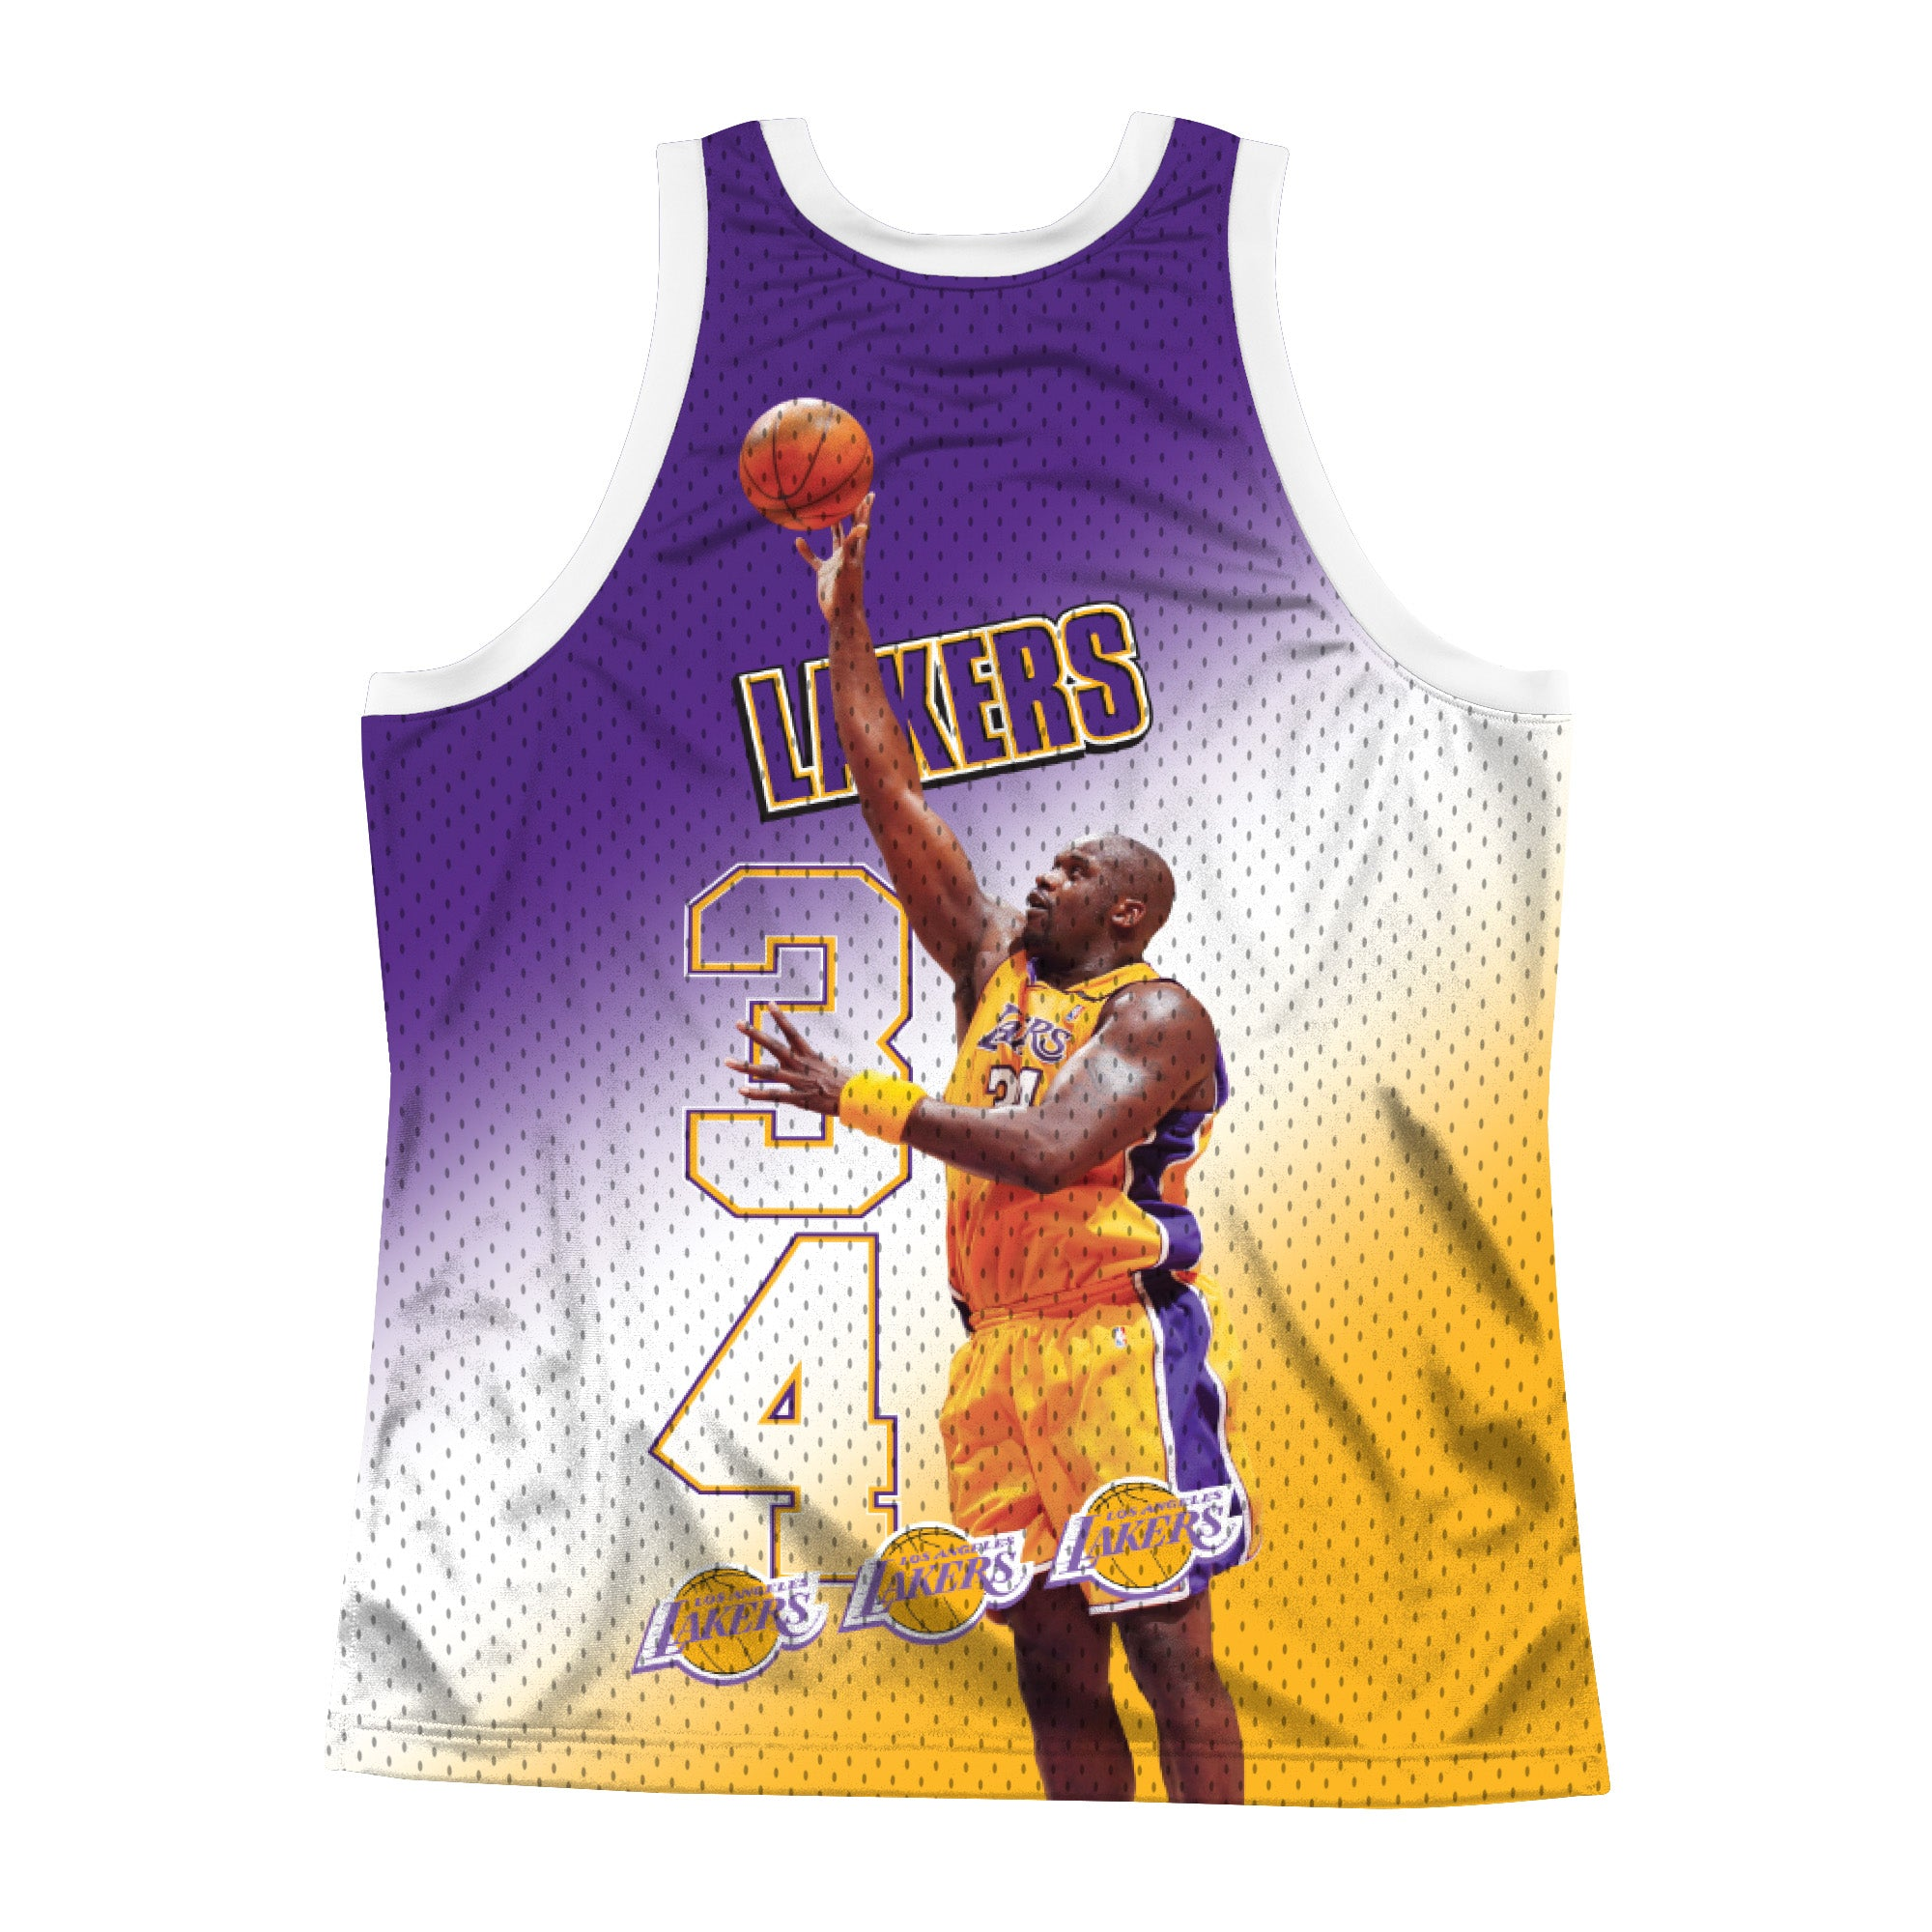 LAKERS BEHIND THE BACK - Black - Mitchell & Ness